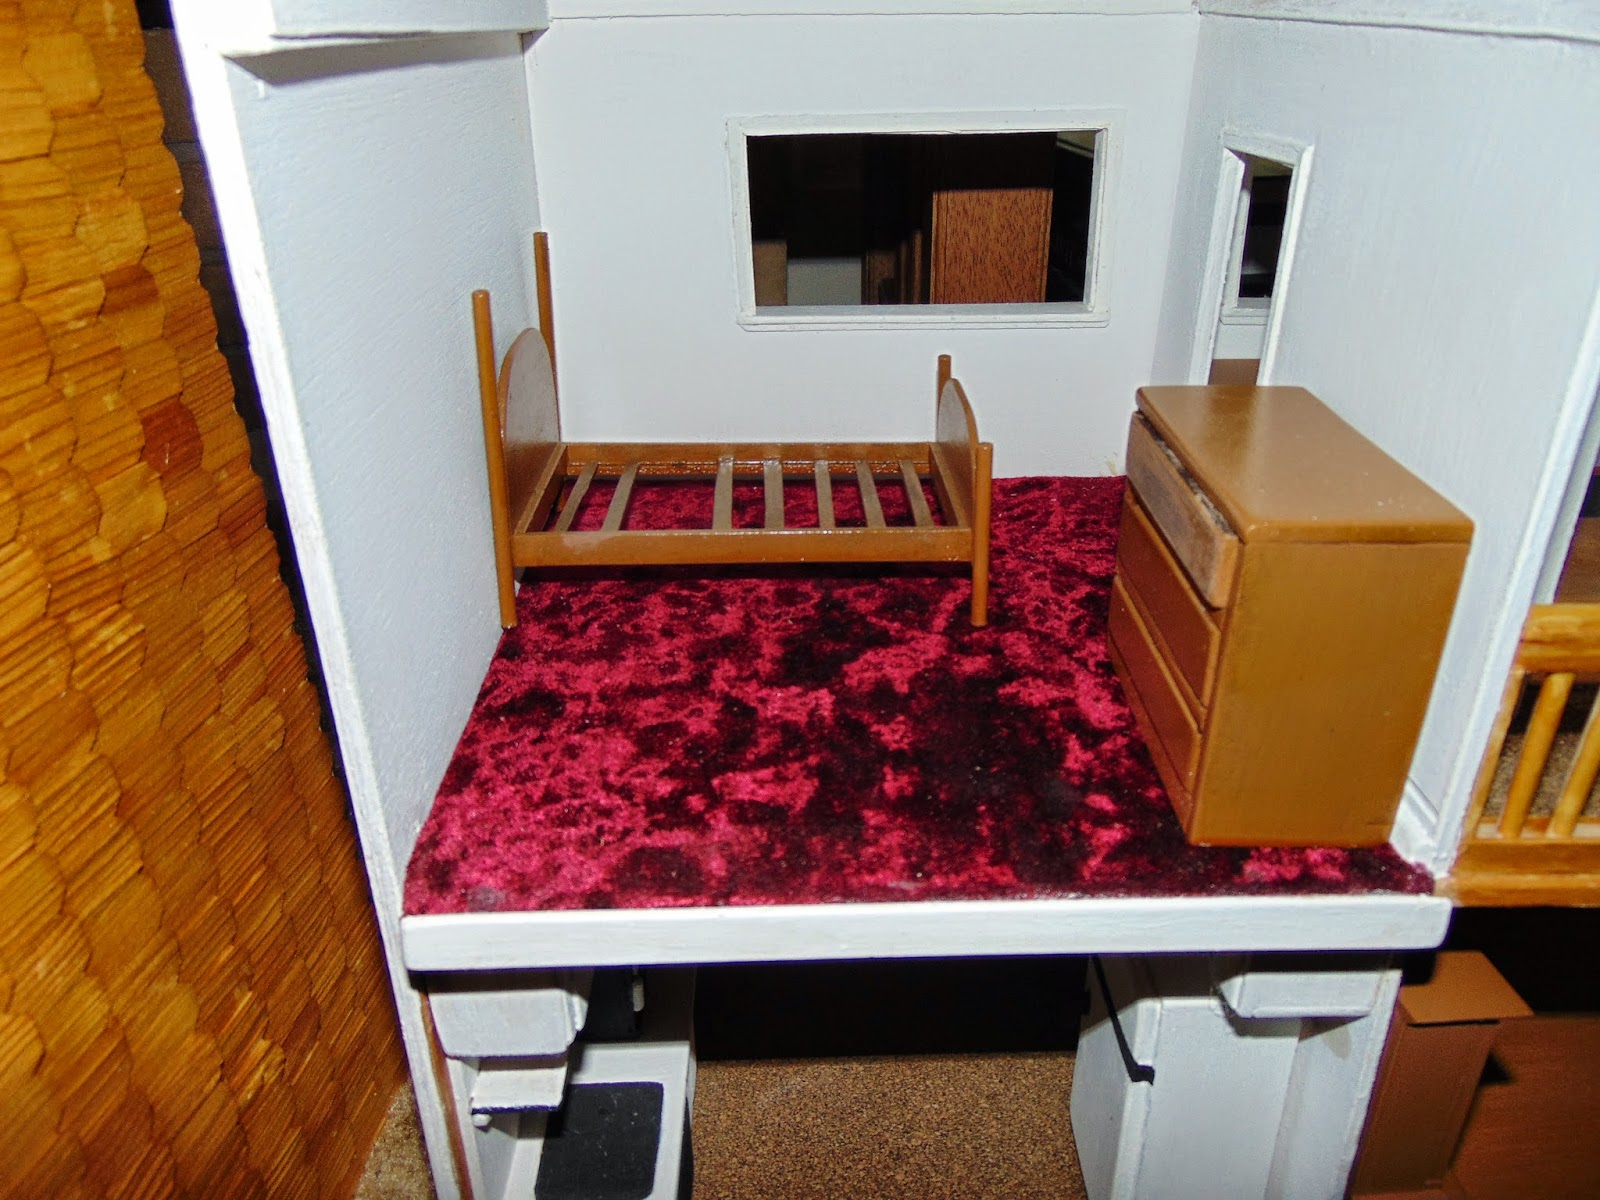 Bed with no mattress or bedspread in dollhouse bedroom